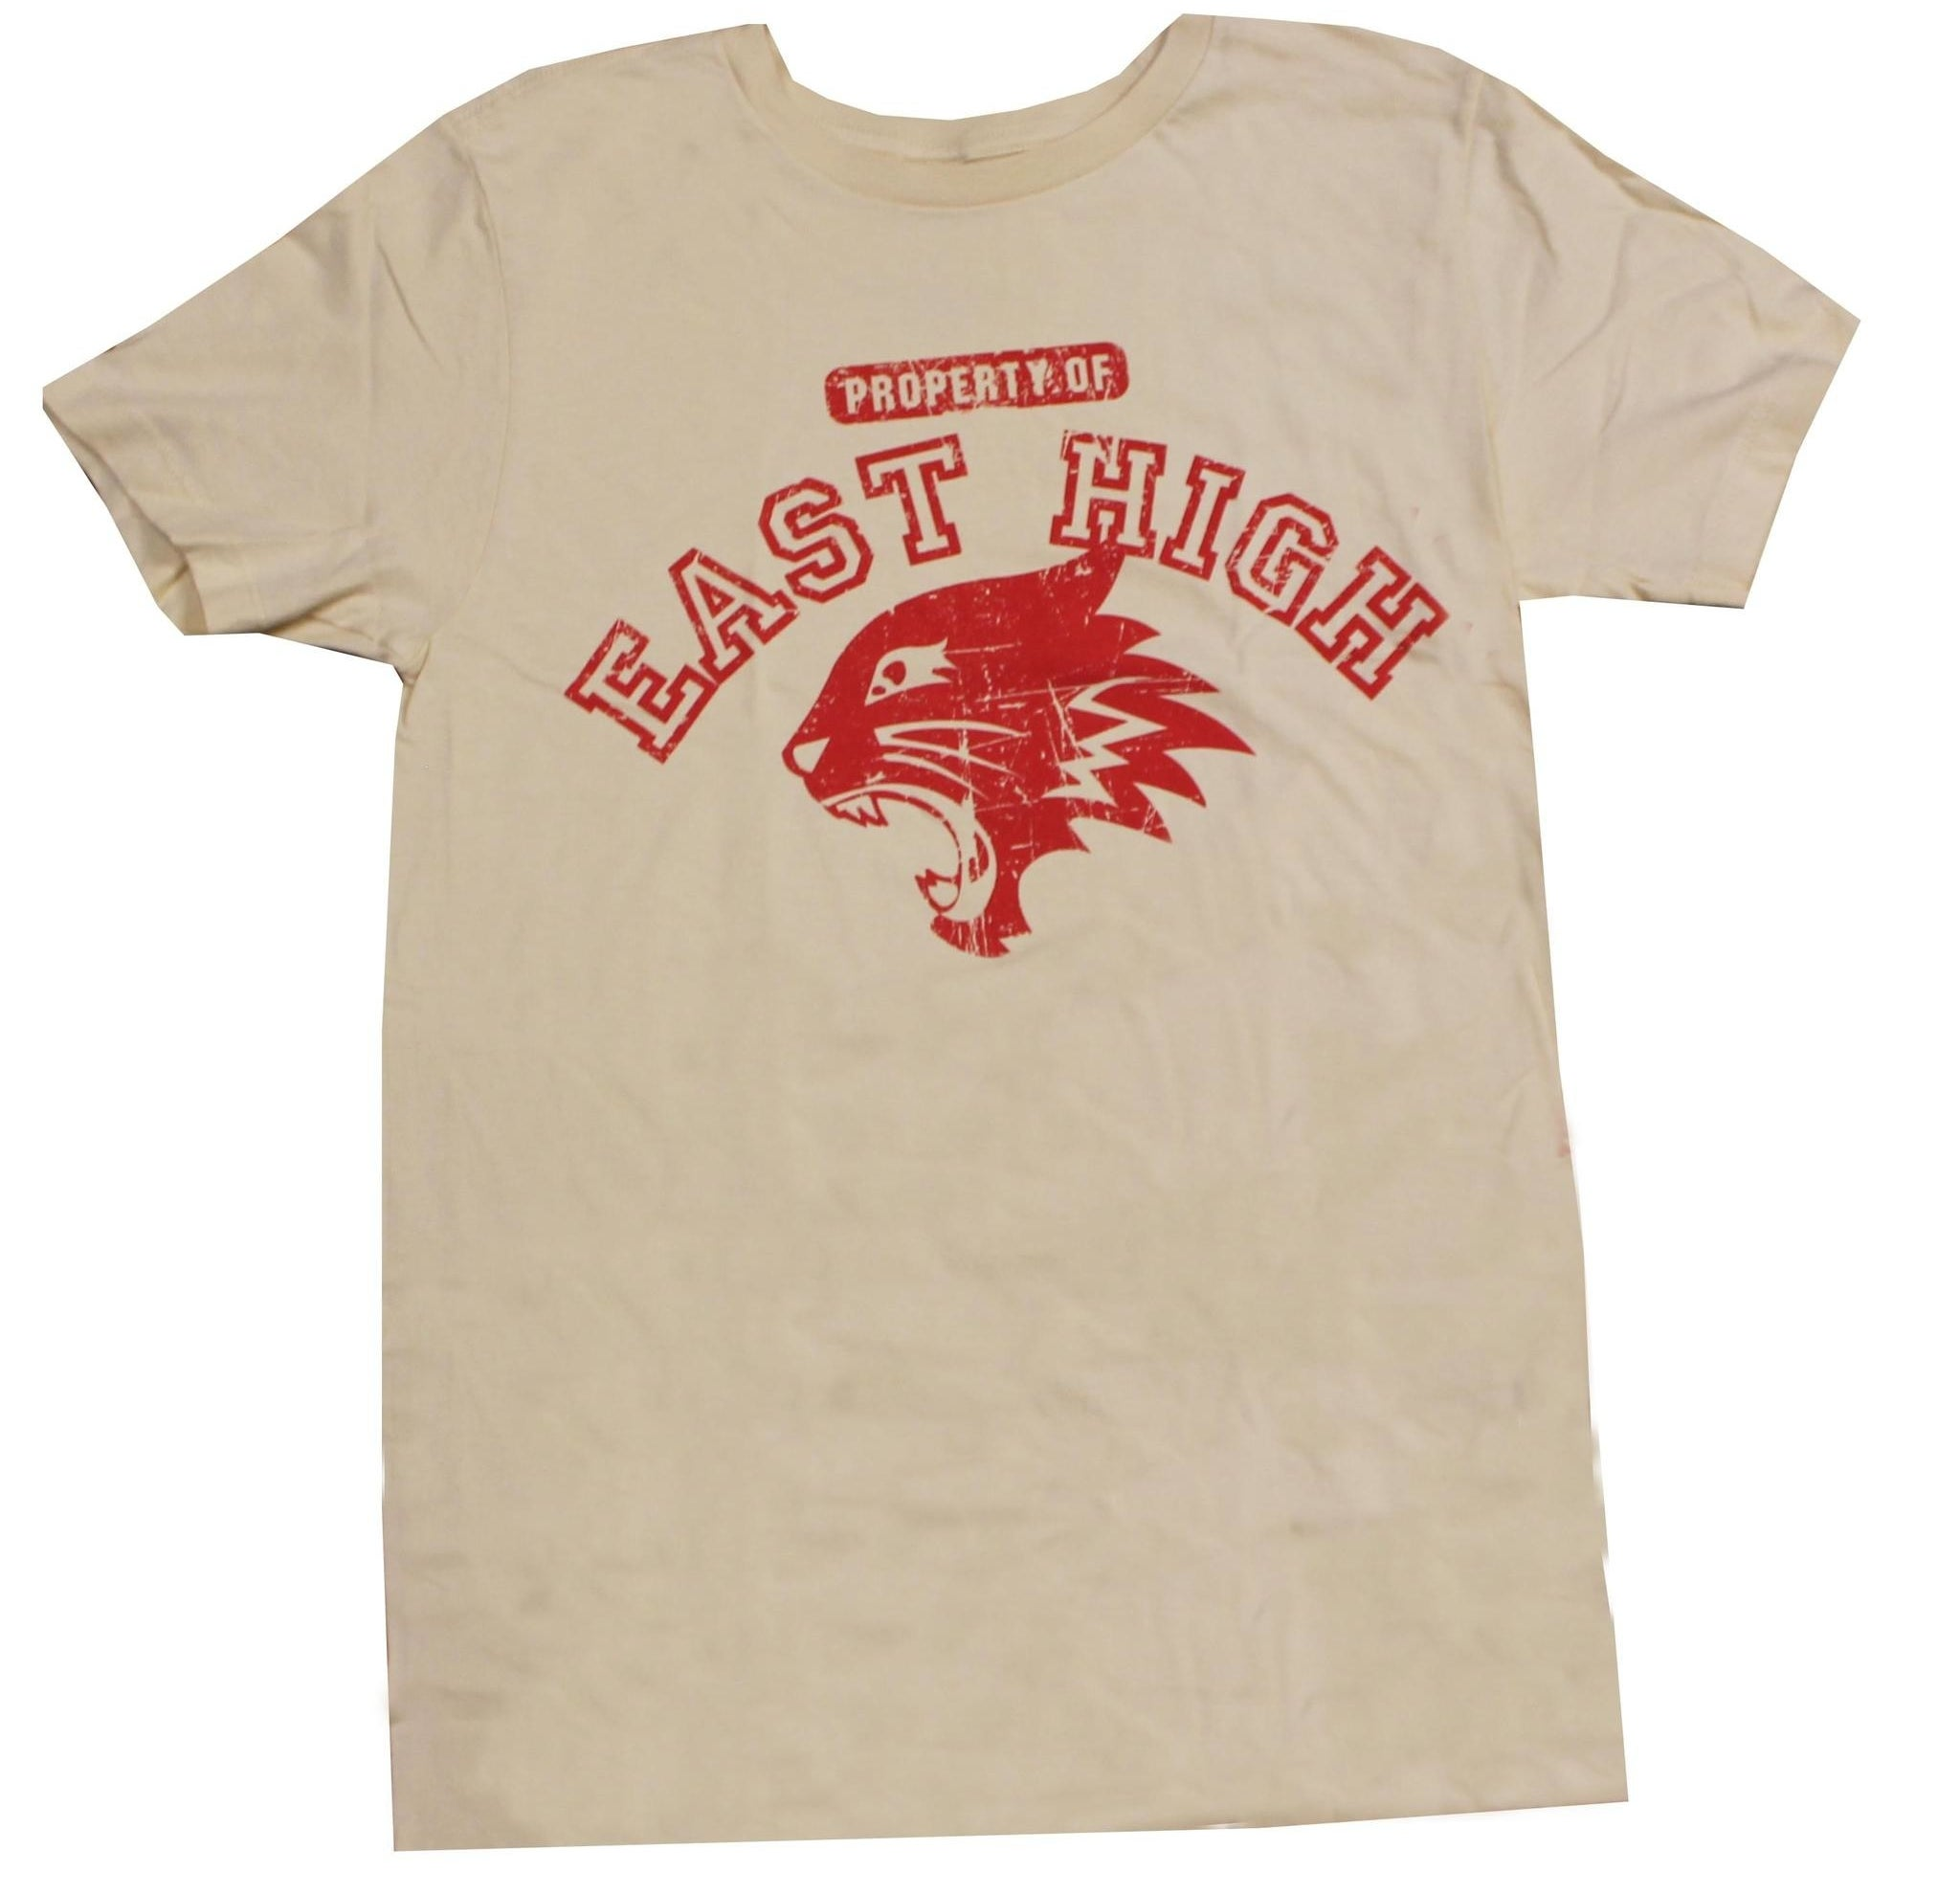 the tan tee with a the red east high logo